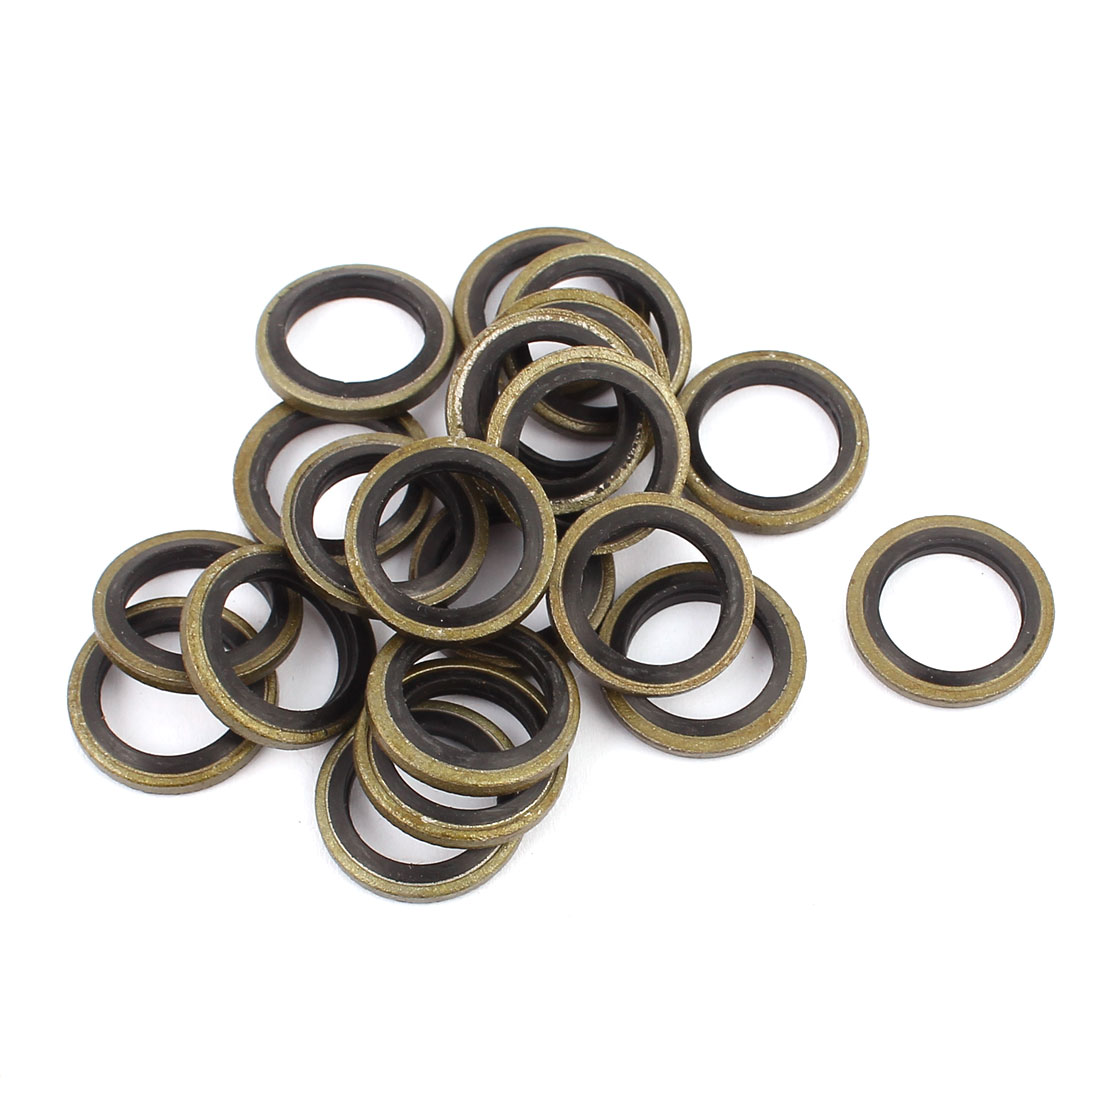 Unique Bargains20pcs 12mmx18mm Rubber Metal Combination Ring Resistant Oil Sealing Ring Gasket - image 2 of 2